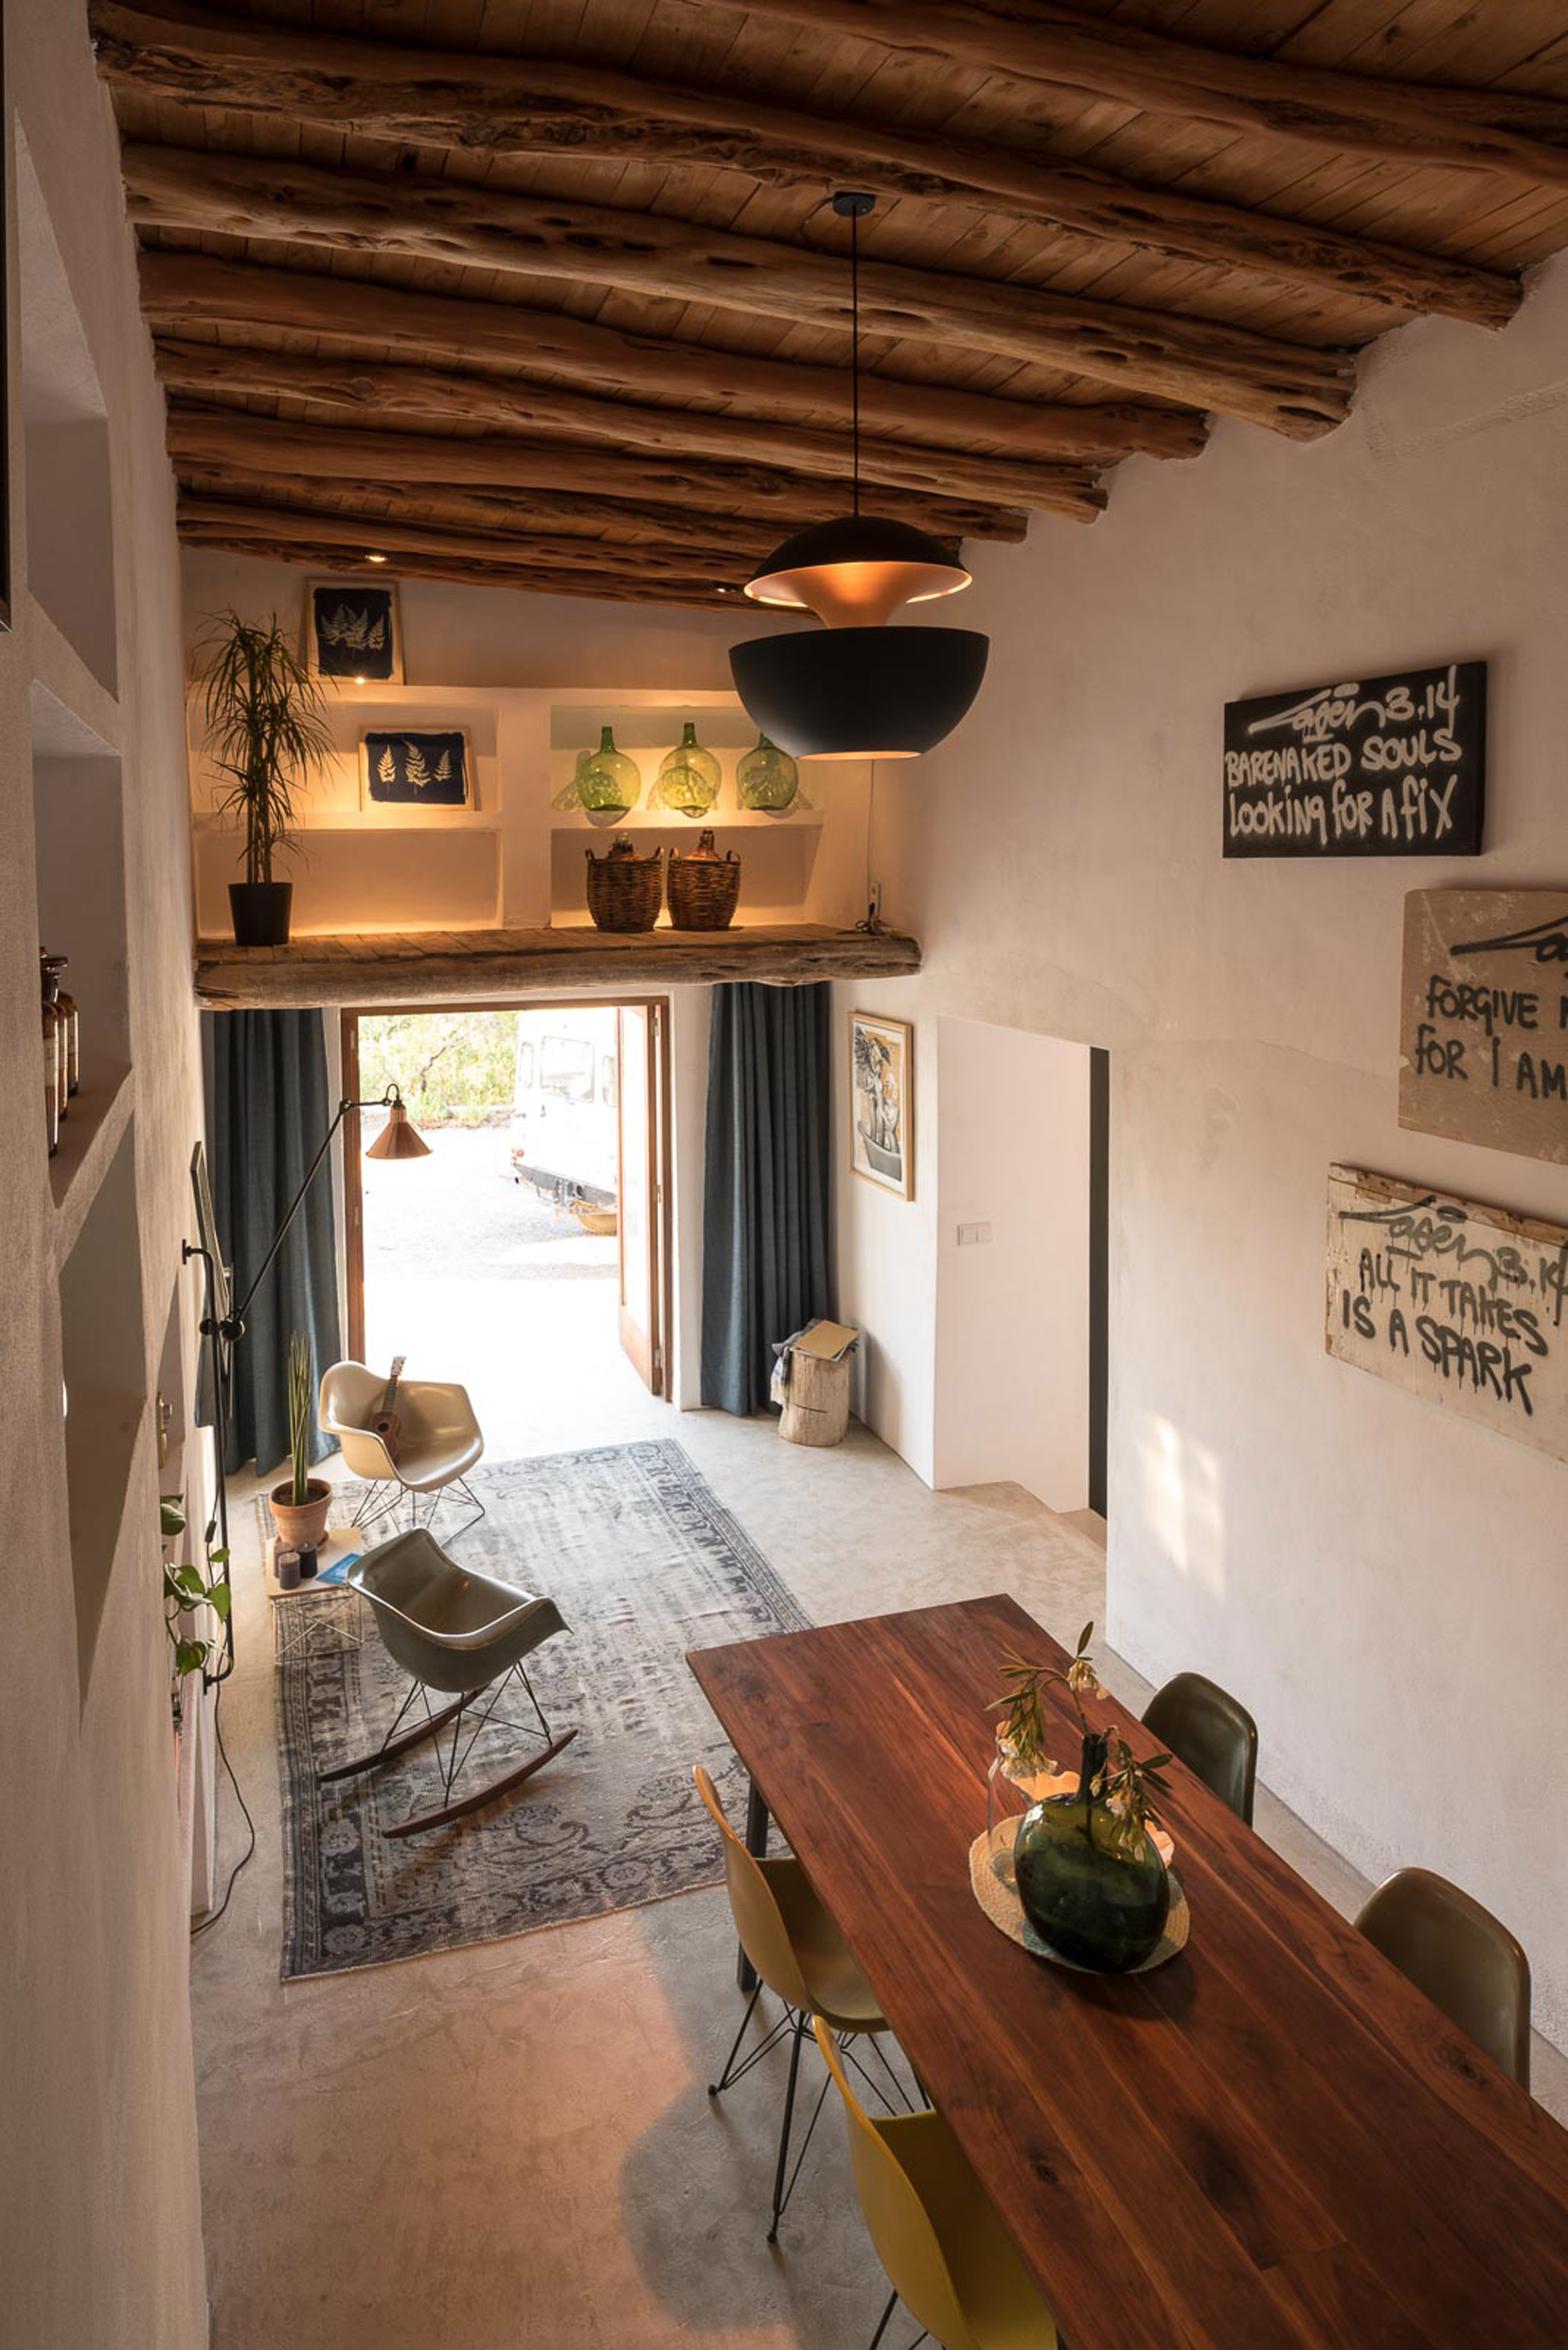 3. Transformation from stable to guesthouse in Ibiza by Standard Studio - Transformation from stable to guesthouse in Ibiza by Standard Studio